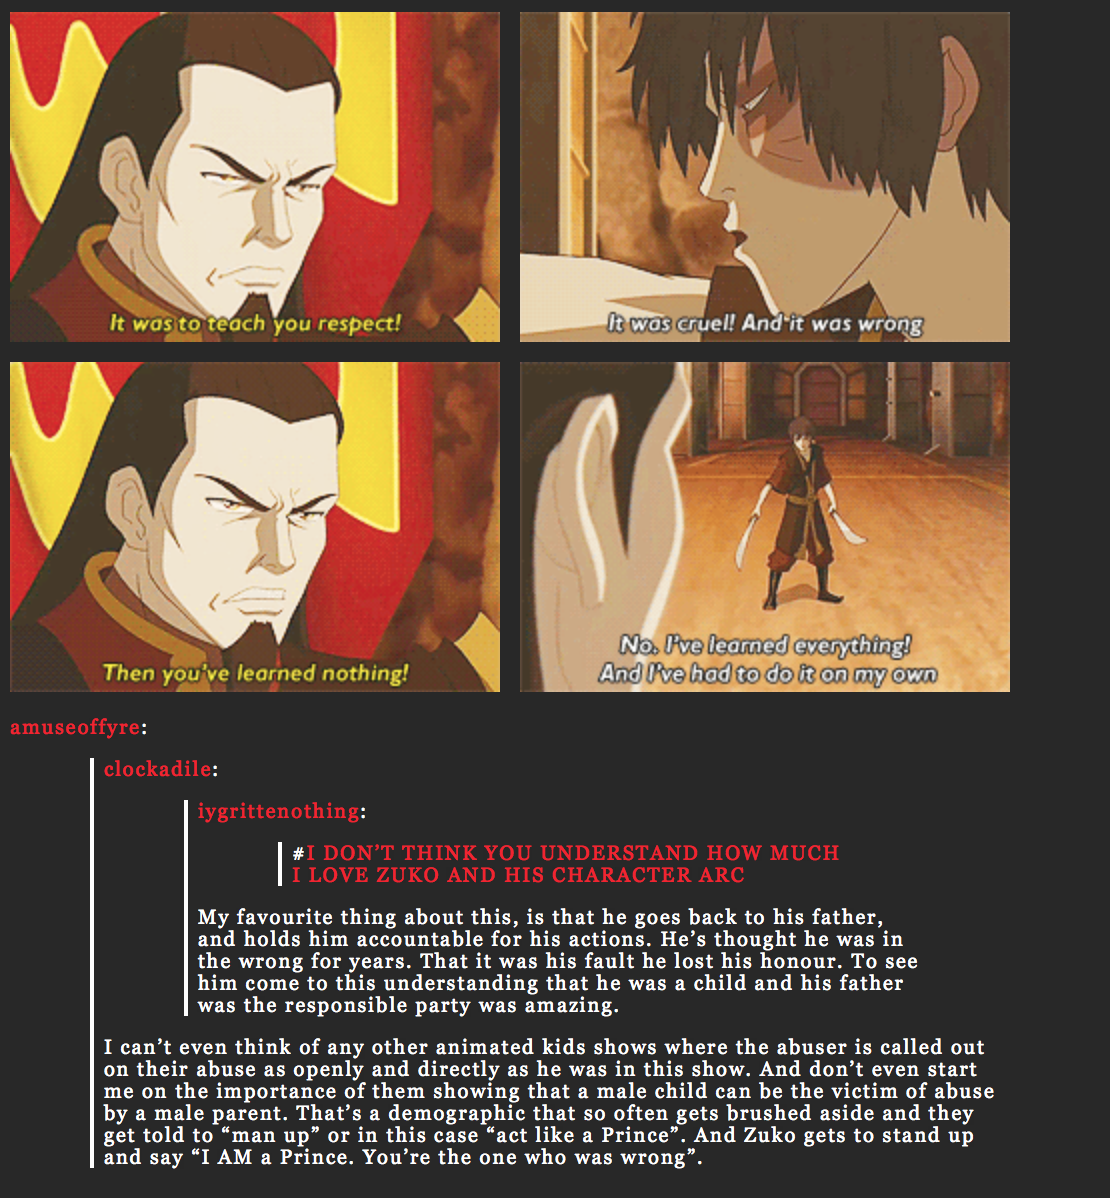 The Last Airbender All Avatars: Zuko's Development